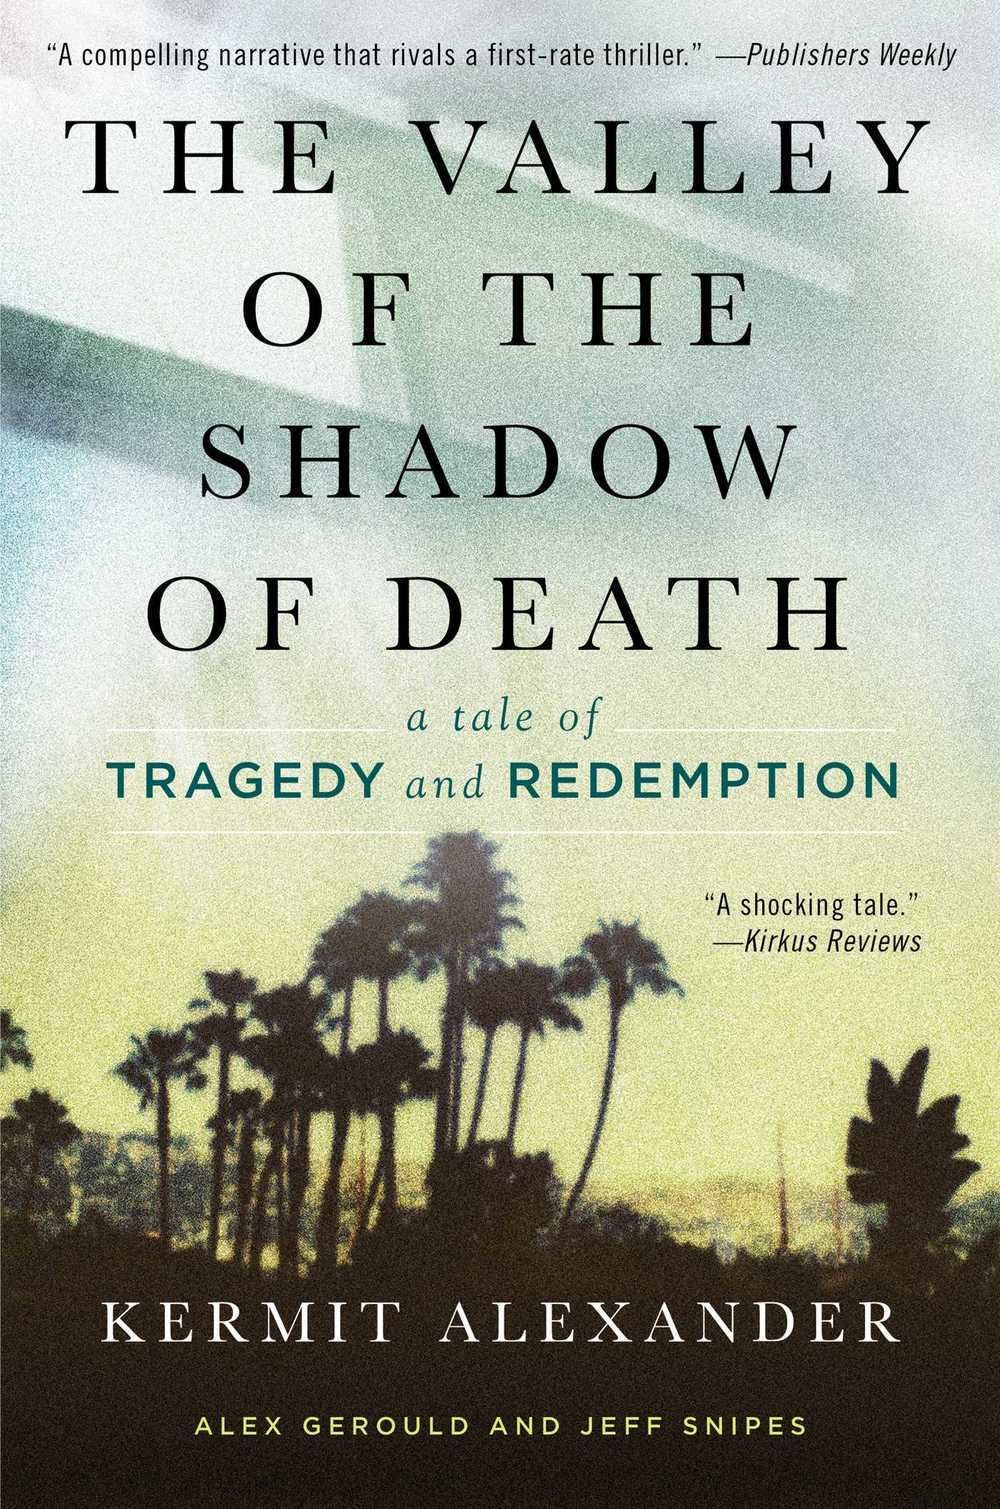 The Valley of the Shadow of Death: A Tale of Tragedy and Redemption by Kermit Alexander, Alexander Gerould and Jeffrey Snipes